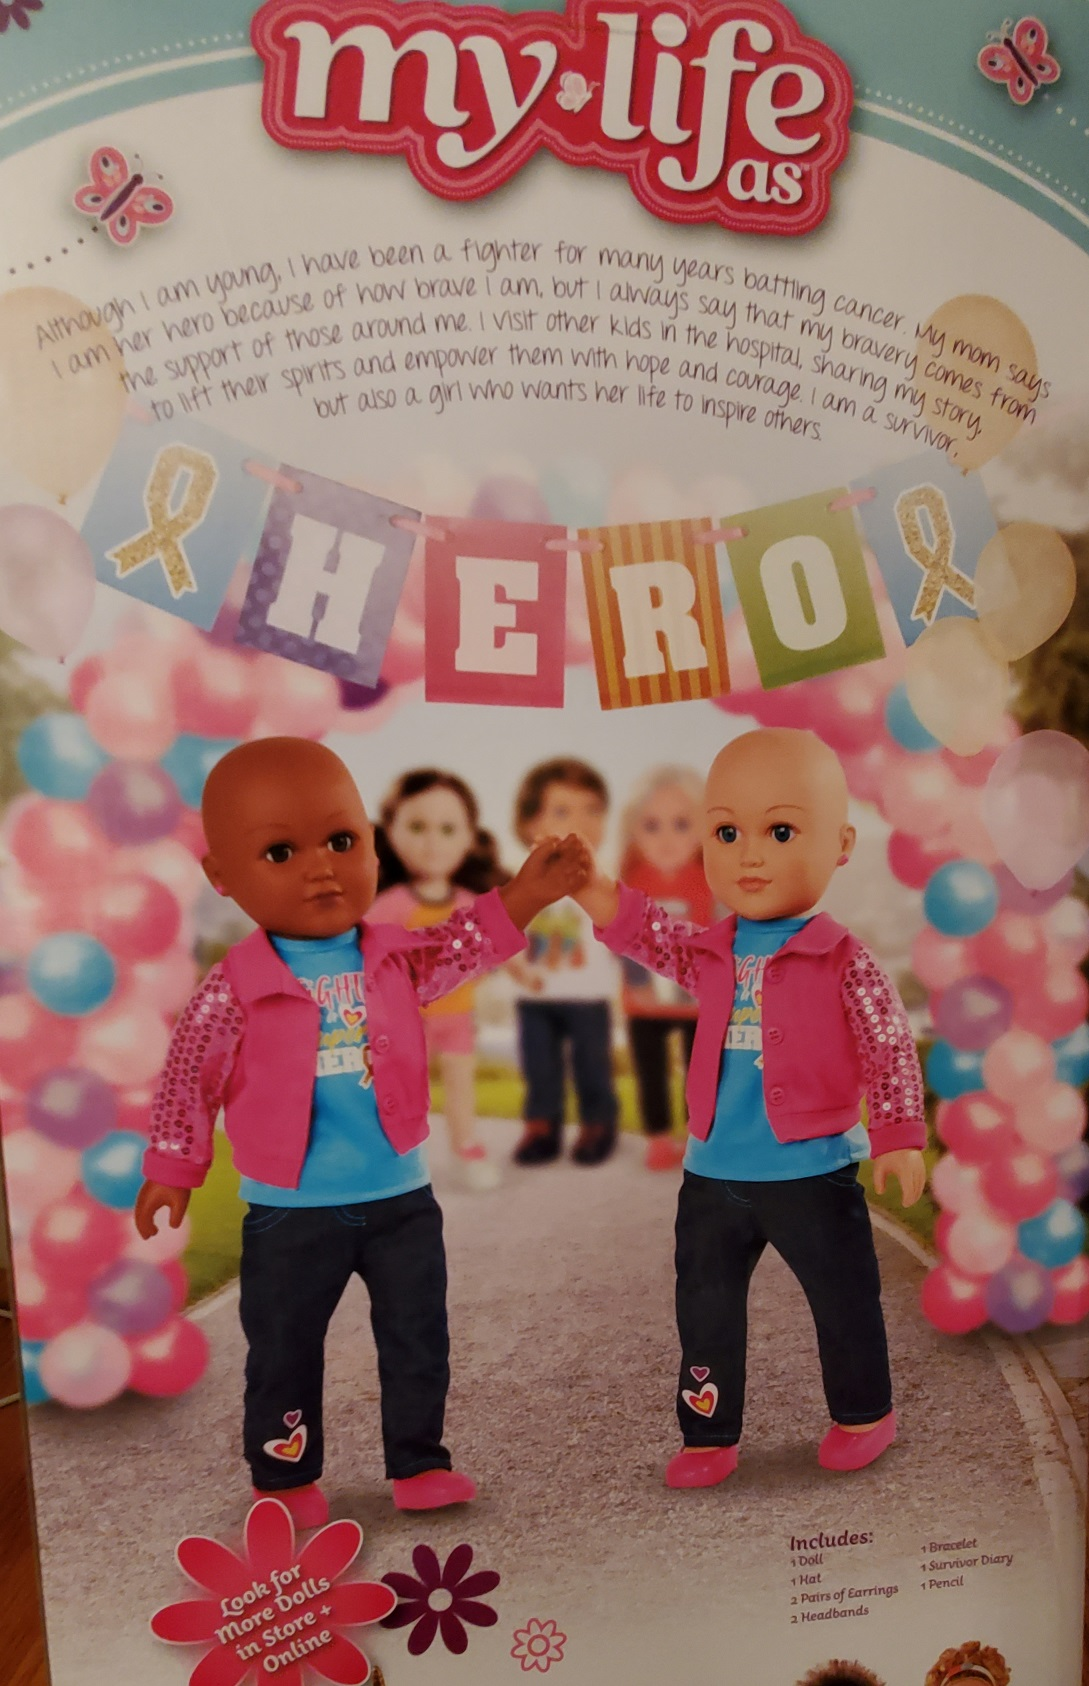 Bald and Beautiful Campaign Donates Dolls to Little Girls Going Through Cancer